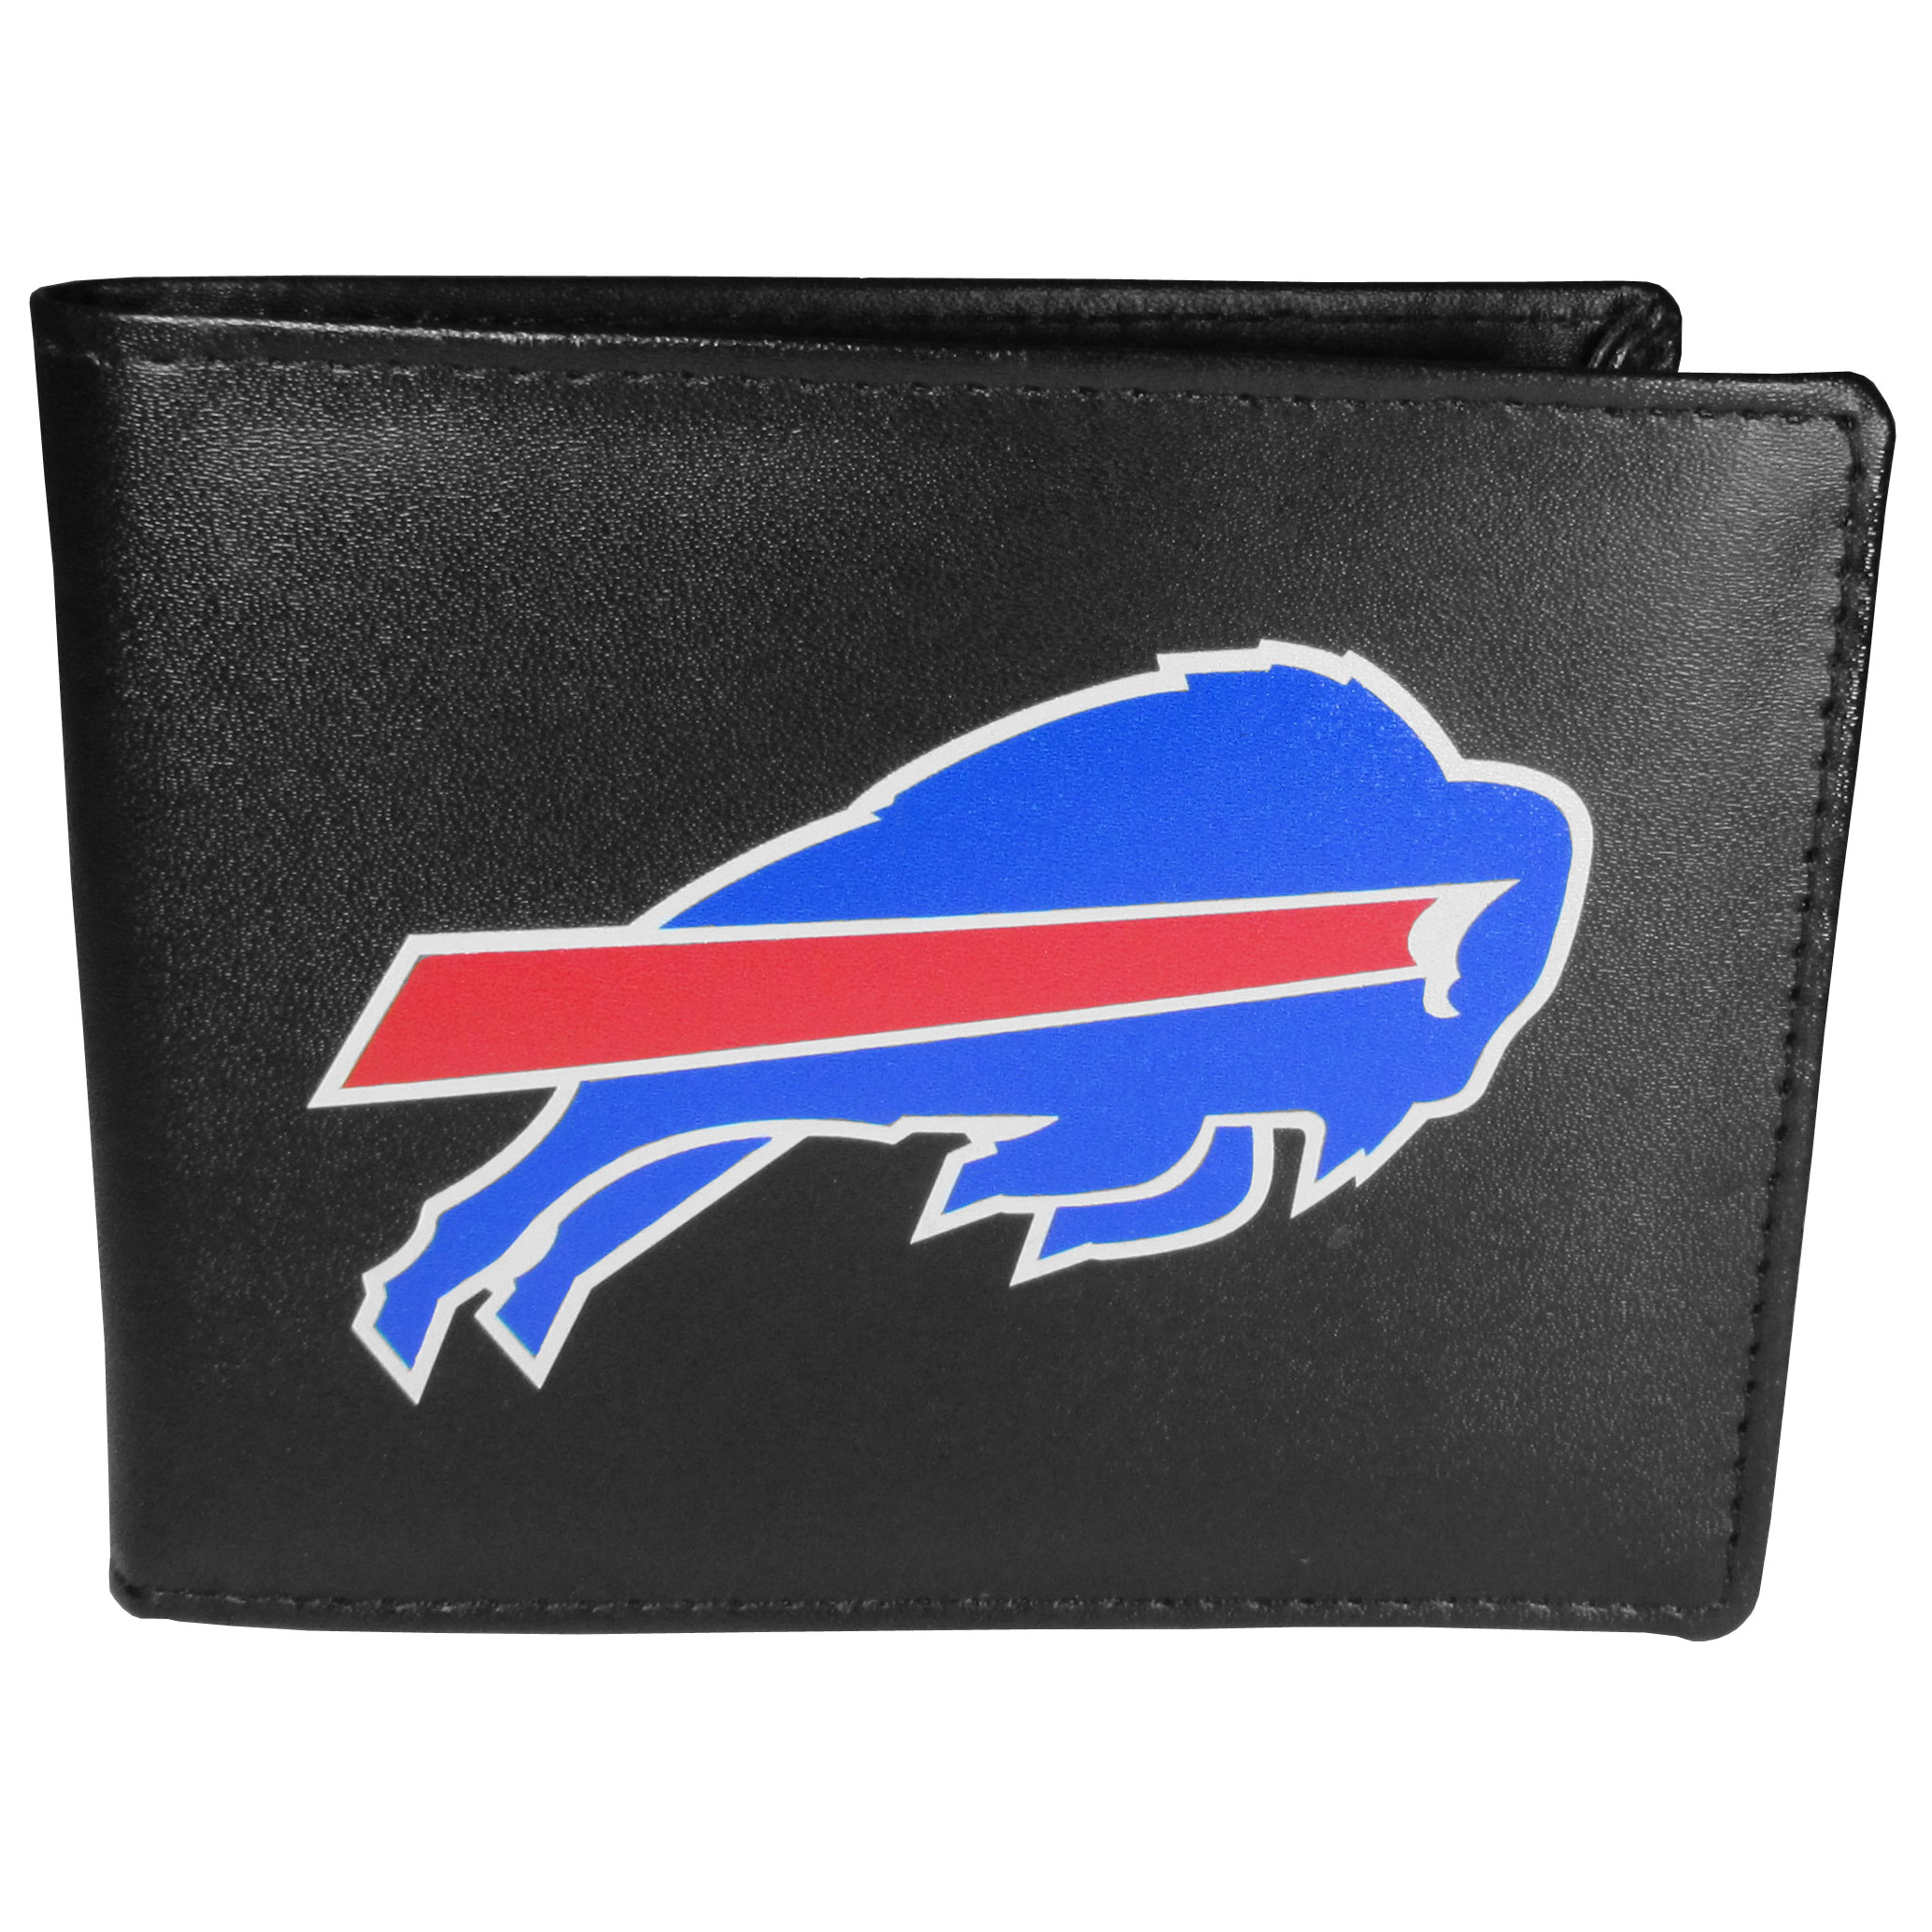 Buffalo Bills Bi-fold Wallet Large Logo - Sports fans do not have to sacrifice style with this classic bi-fold wallet that sports the Buffalo Bills extra large logo. This men's fashion accessory has a leather grain look and expert craftmanship for a quality wallet at a great price. The wallet features inner credit card slots, windowed ID slot and a large billfold pocket. The front of the wallet features a printed team logo.